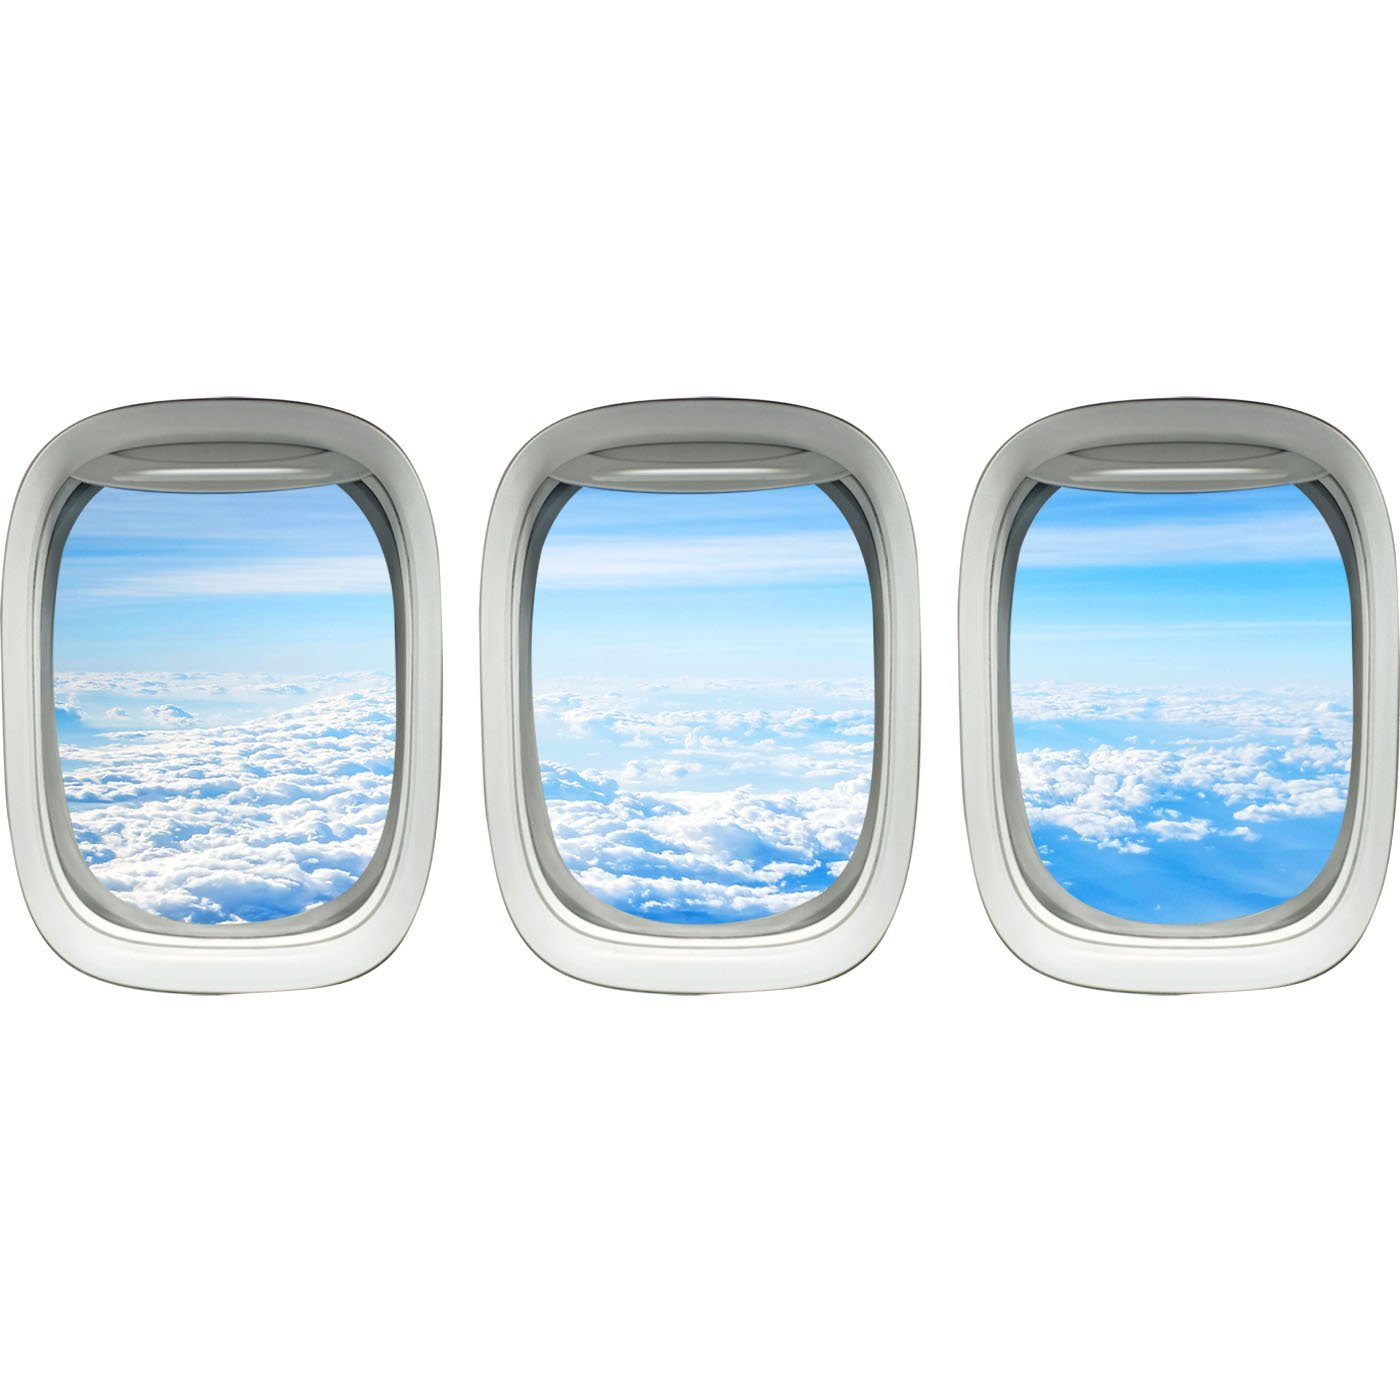 Airplane Window View Wall Decals PPW37 - VWAQ Vinyl Wall Art Quotes and Prints